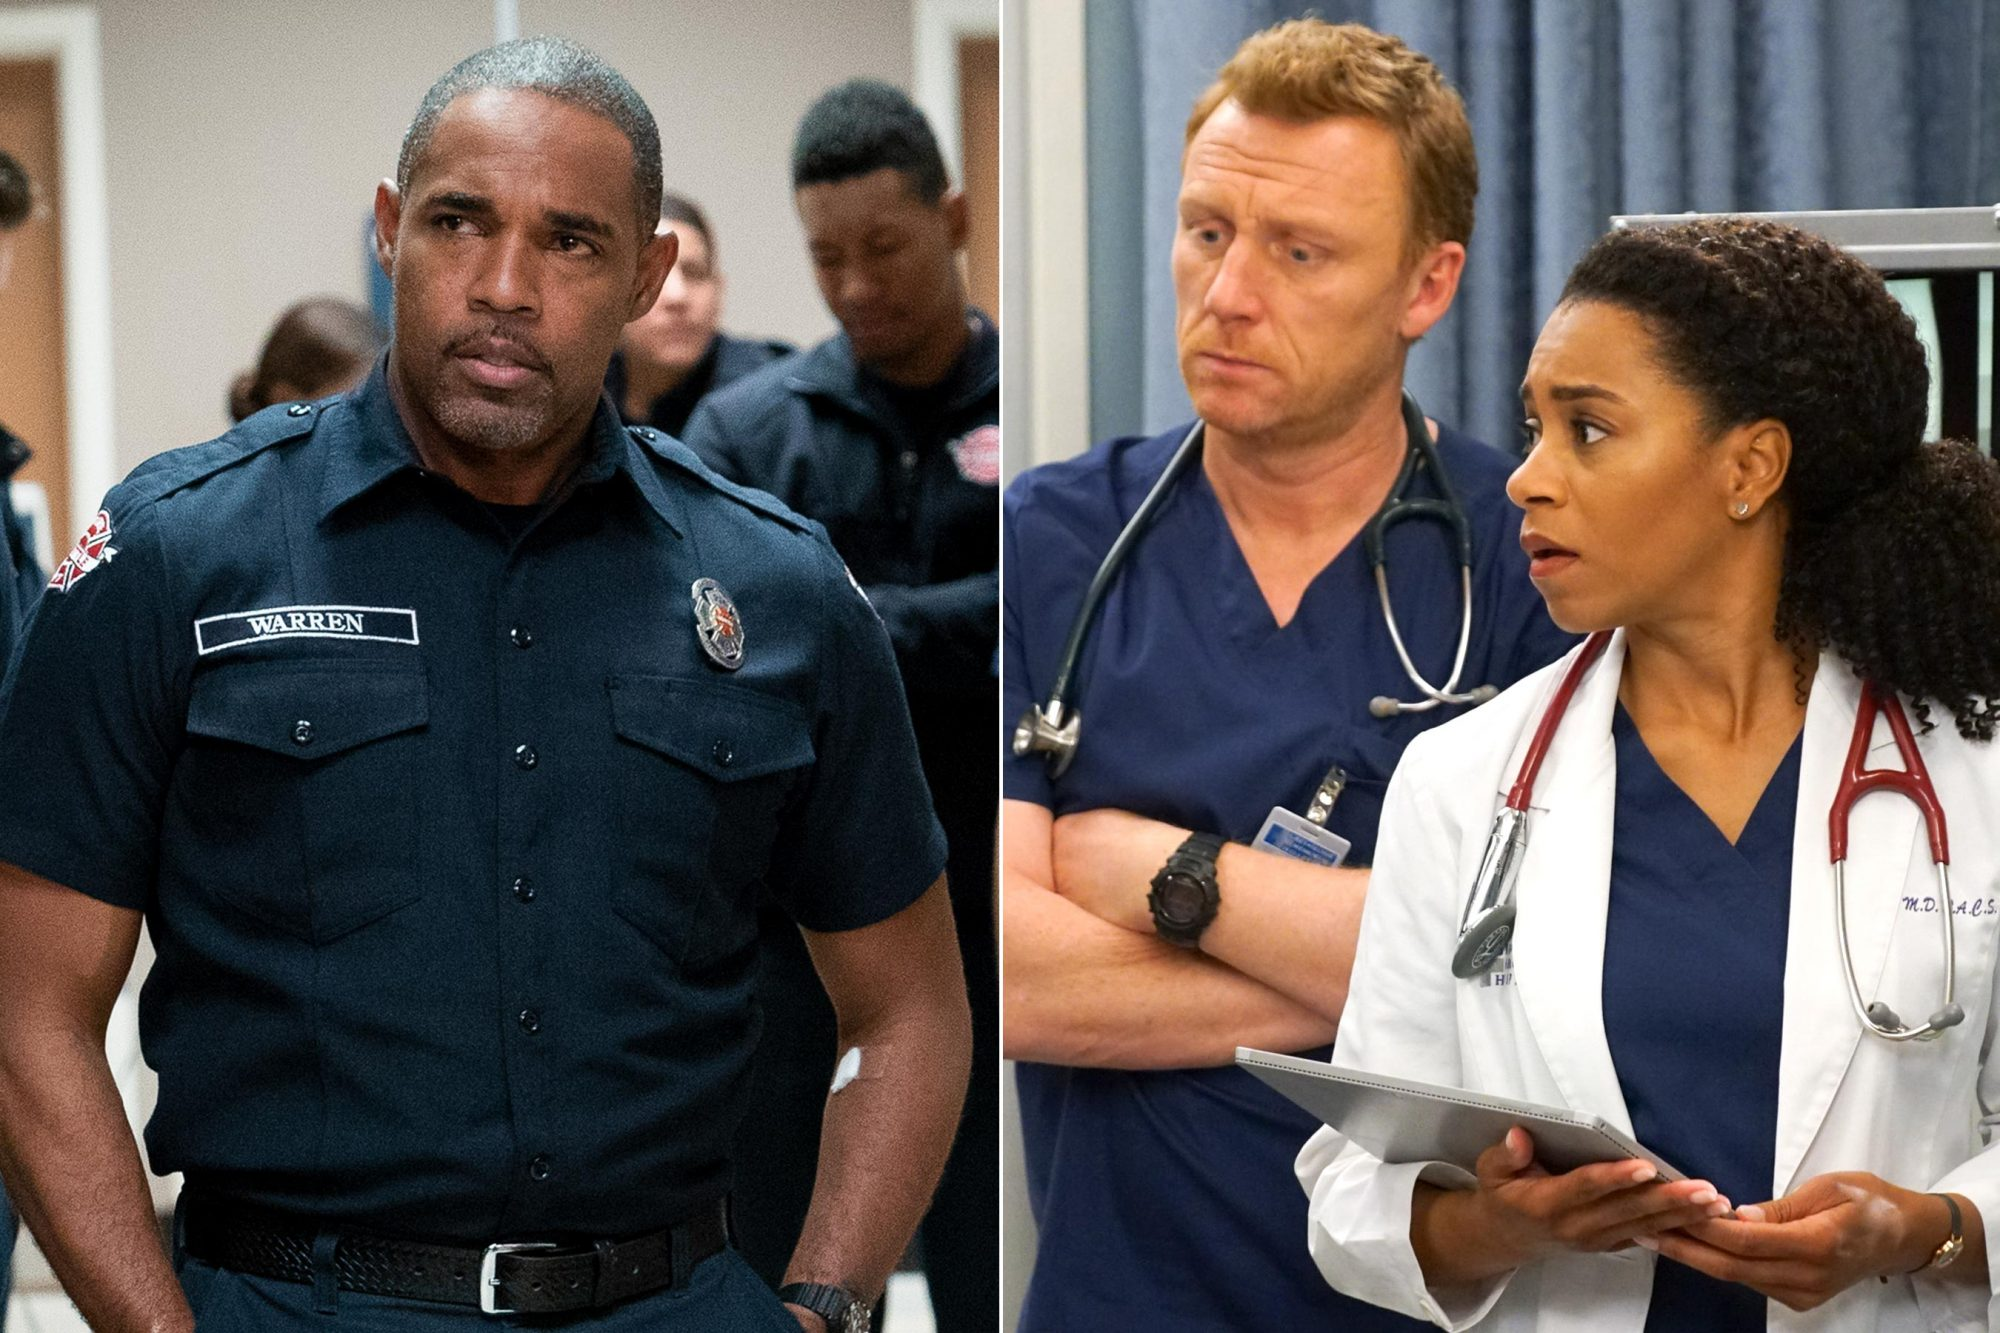 "STATION 19 - Worlds will collide in Seattle once again, as ABC is set to air a TGIT crossover event on Thursday, May 2, featuring all-new episodes of ""Grey's Anatomy"" and ""Station 19"" from 8:00-10:00 p.m. EDT. The second hour of the TGIT crossover event is an all-new episode of ""Station 19,"" entitled ""Always Ready."" Following a deadly blaze inside a coffee beanery, the members of Station 19 find themselves on high alert as a beloved member of their team lands at Grey Sloan, leaving the future uncertain in the face of a life-threatening situation, on ""Station 19,"" THURSDAY, MAY 2 (9:01-10:00 p.m. EDT), on The ABC Television Network. (ABC/Eric McCandless) JASON GEORGE GREY'S ANATOMY - Worlds will collide in Seattle once again, as ABC is set to air a TGIT crossover event on Thursday, May 2, featuring all-new episodes of ""Grey's Anatomy"" and ""Station 19"" from 8:00-10:00 p.m. EDT. The TGIT crossover event kicks off with an all-new episode of ""Grey's Anatomy,"" entitled ""What I Did for Love,"" where Maggie treats one of Station 19's own, and Jo learns a hard lesson. Meanwhile, when working with a family seeking asylum, Meredith makes a call that could jeopardize her career on ""Grey's Anatomy,"" THURSDAY, MAY 2 (8:00-9:01 p.m. EDT), on The ABC Television Network. (ABC/Scott Everett White) KEVIN MCKIDD, KELLY MCCREARY"